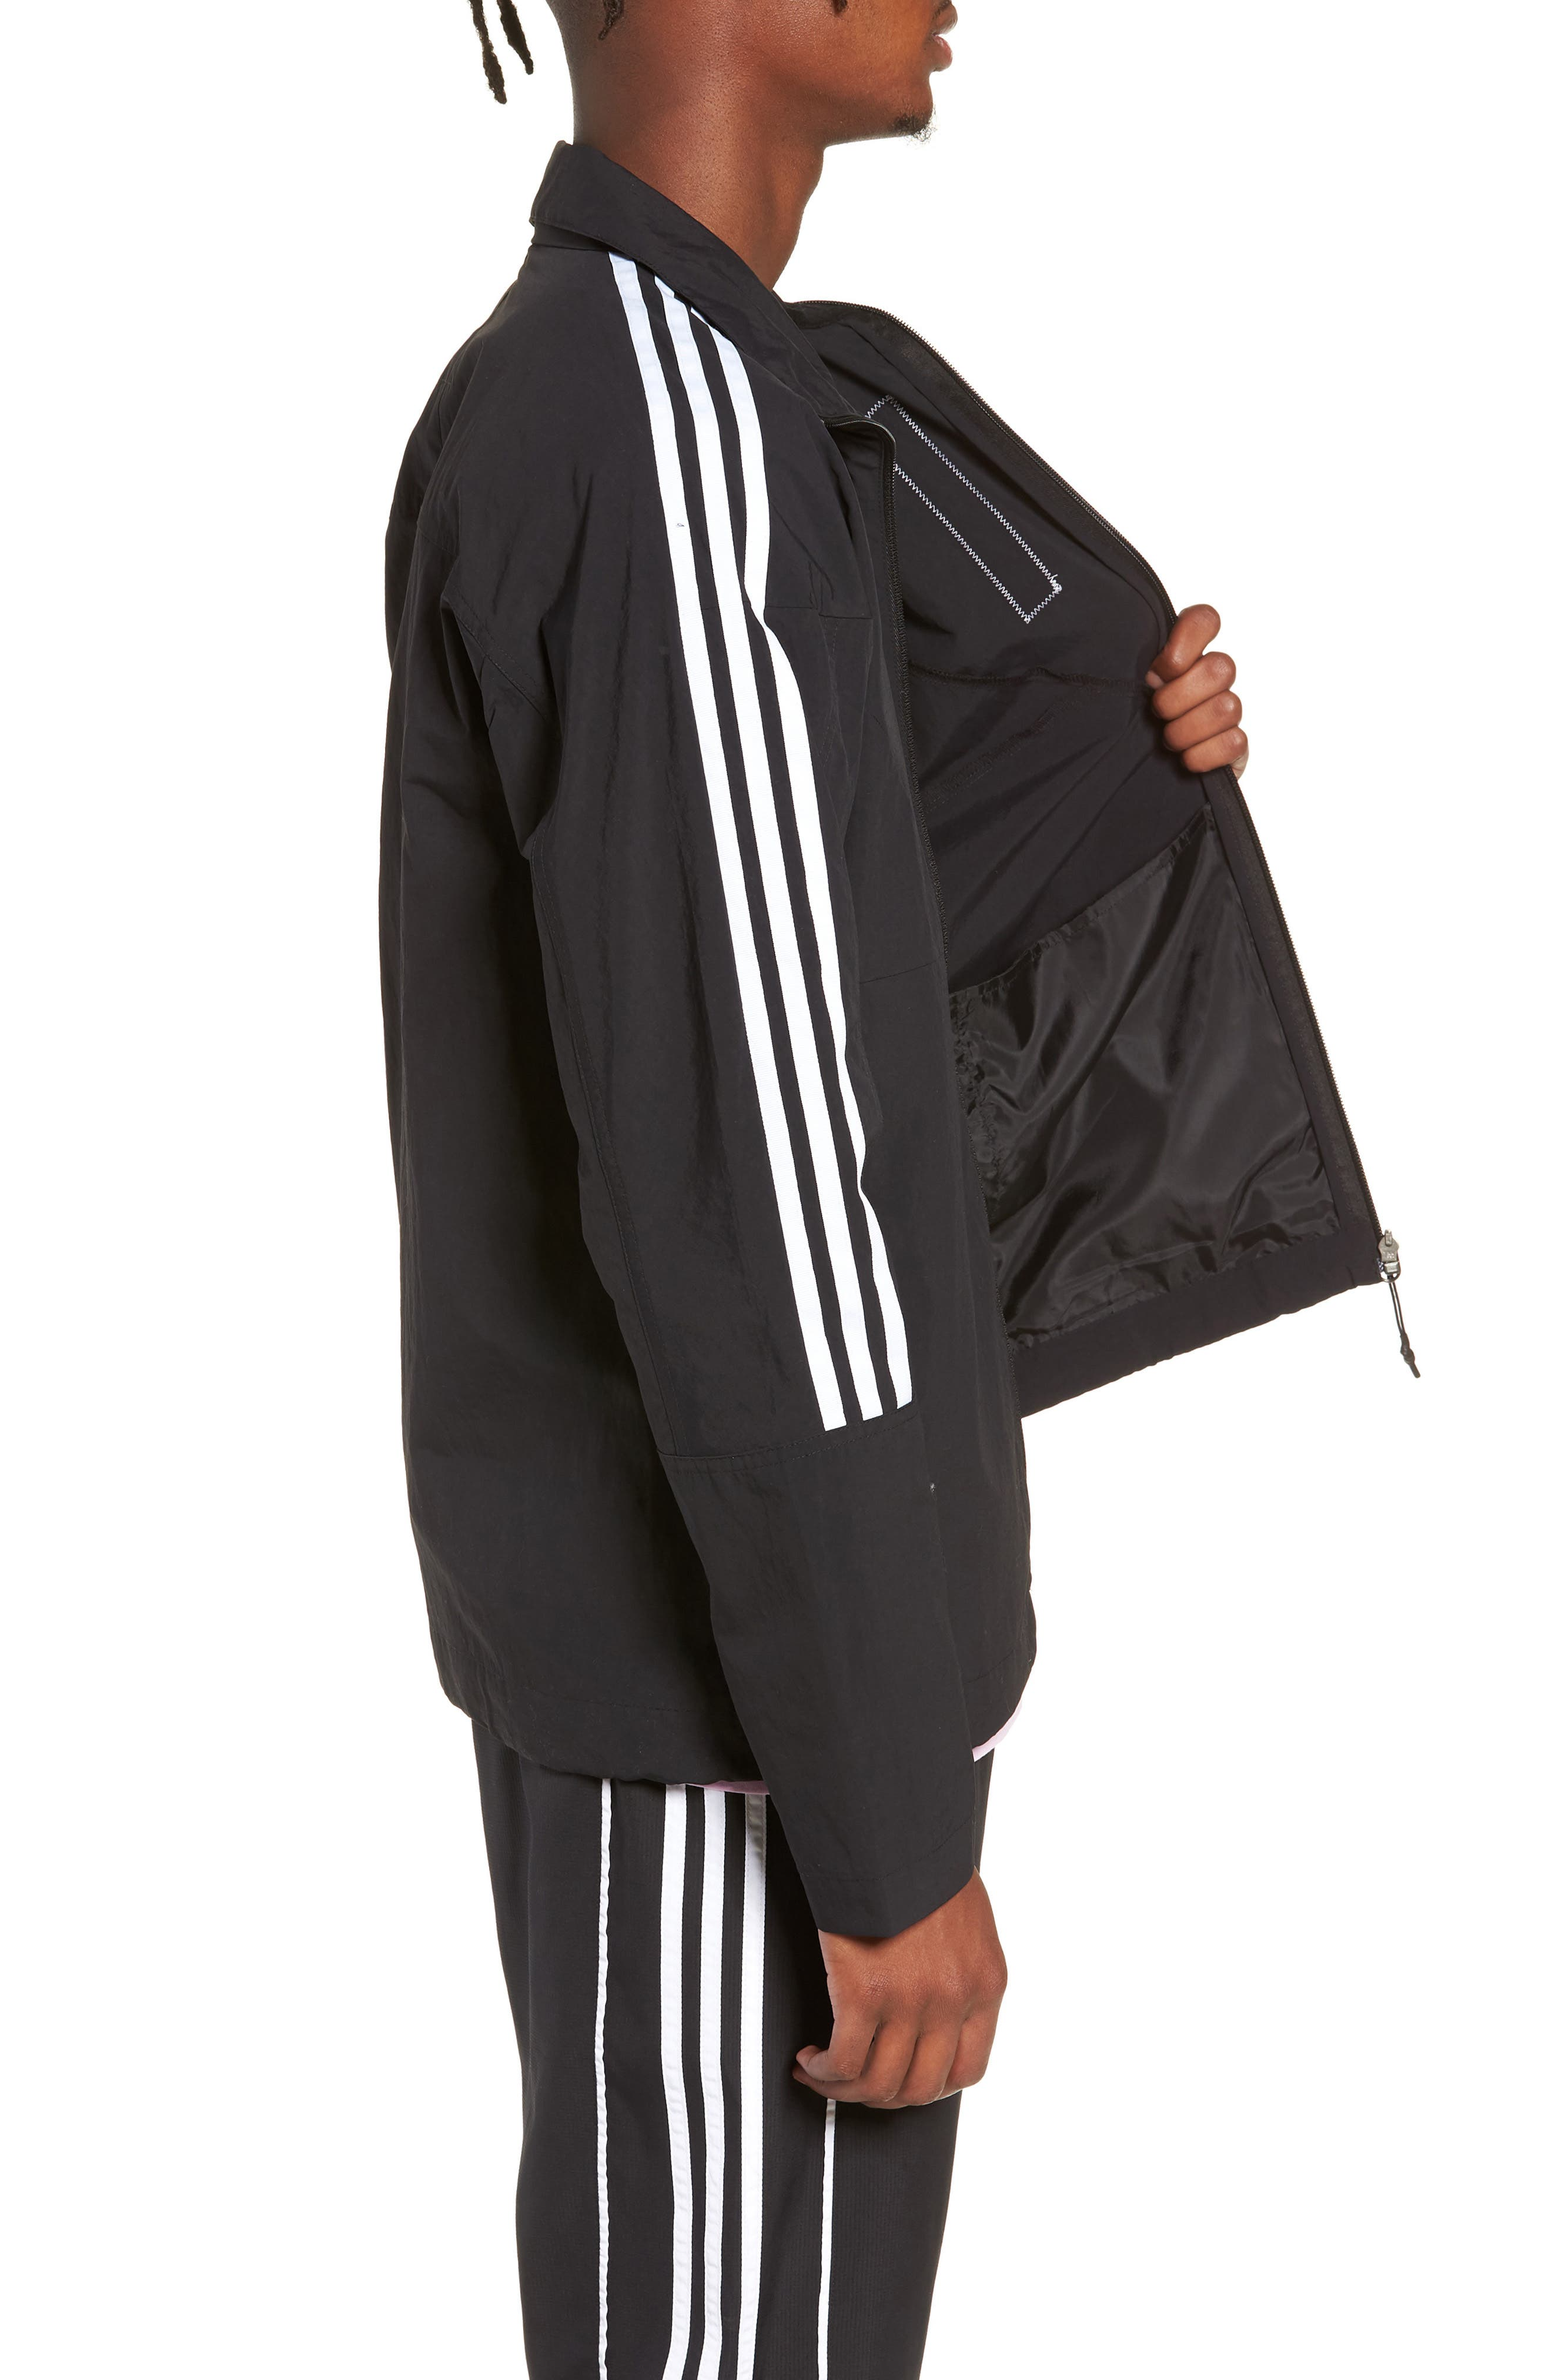 NMD Track Jacket,                             Alternate thumbnail 3, color,                             001